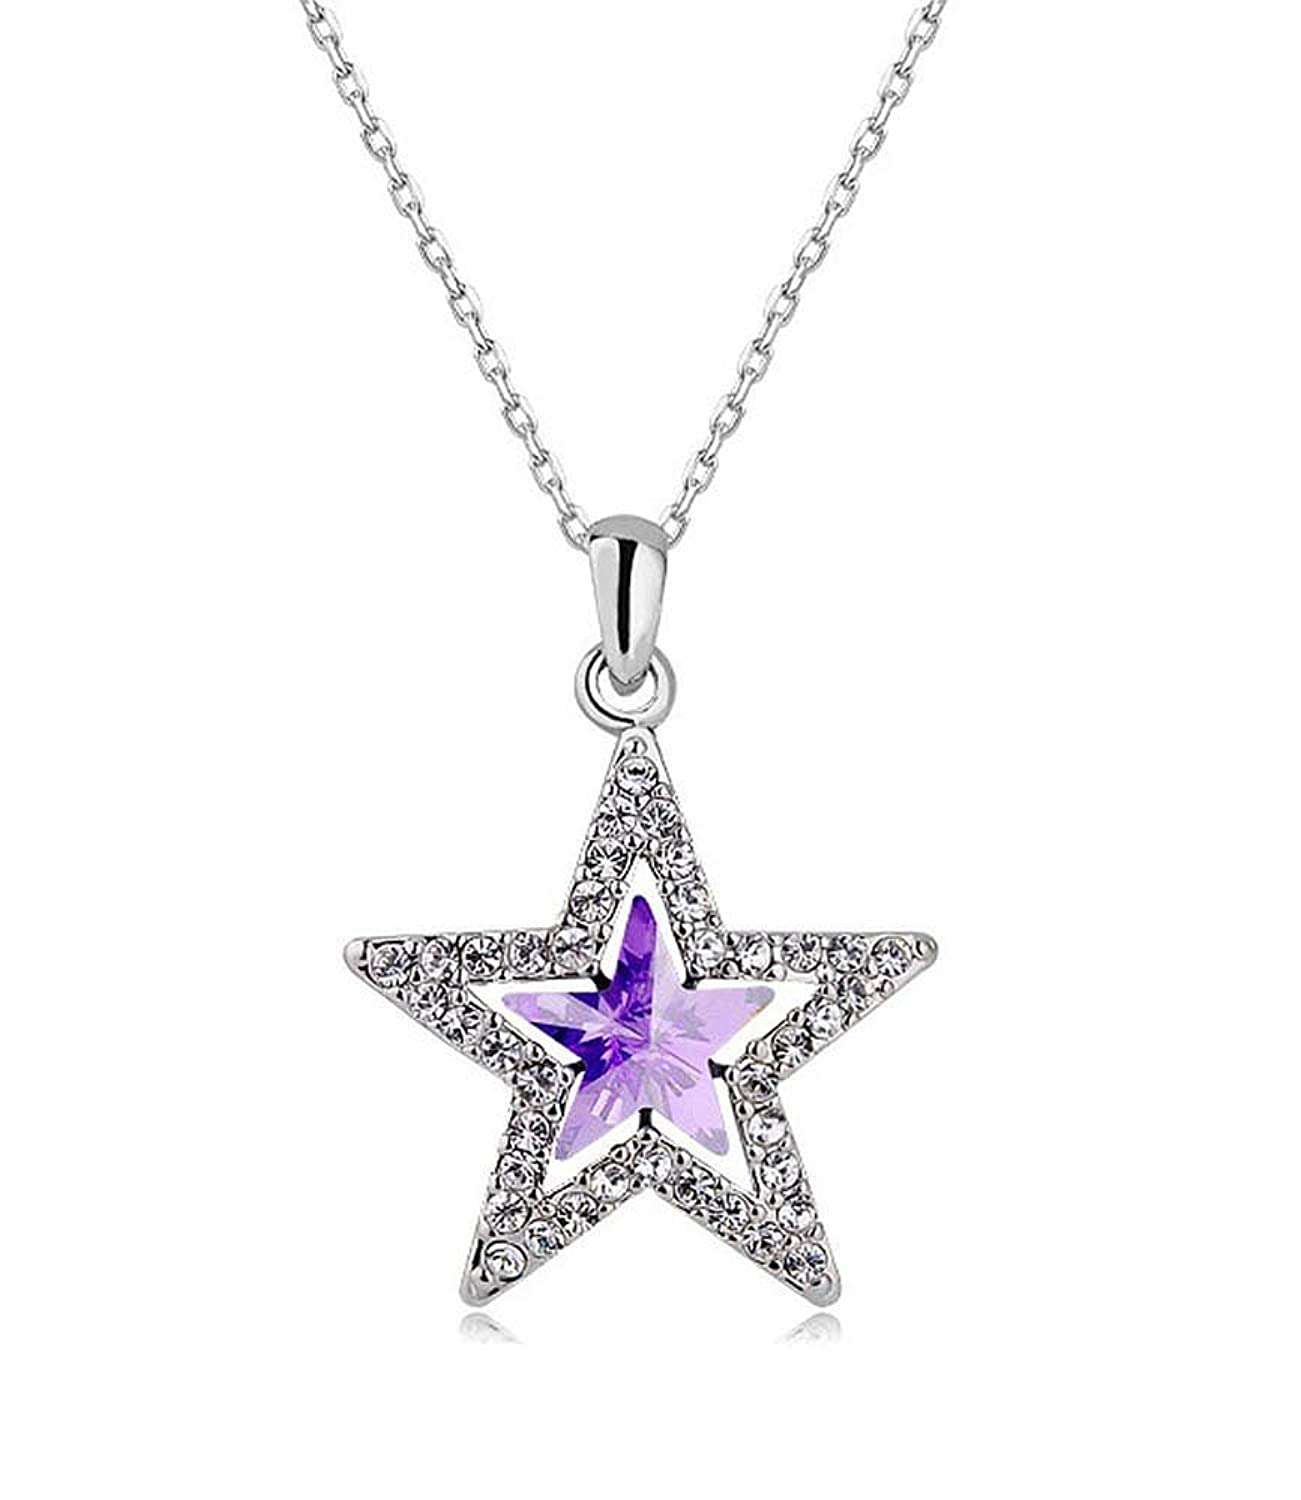 Celebrity jewellery purple swarovski elements glass crystal star celebrity jewellery purple swarovski elements glass crystal star shaped pendant necklace for women amazon jewellery mozeypictures Image collections